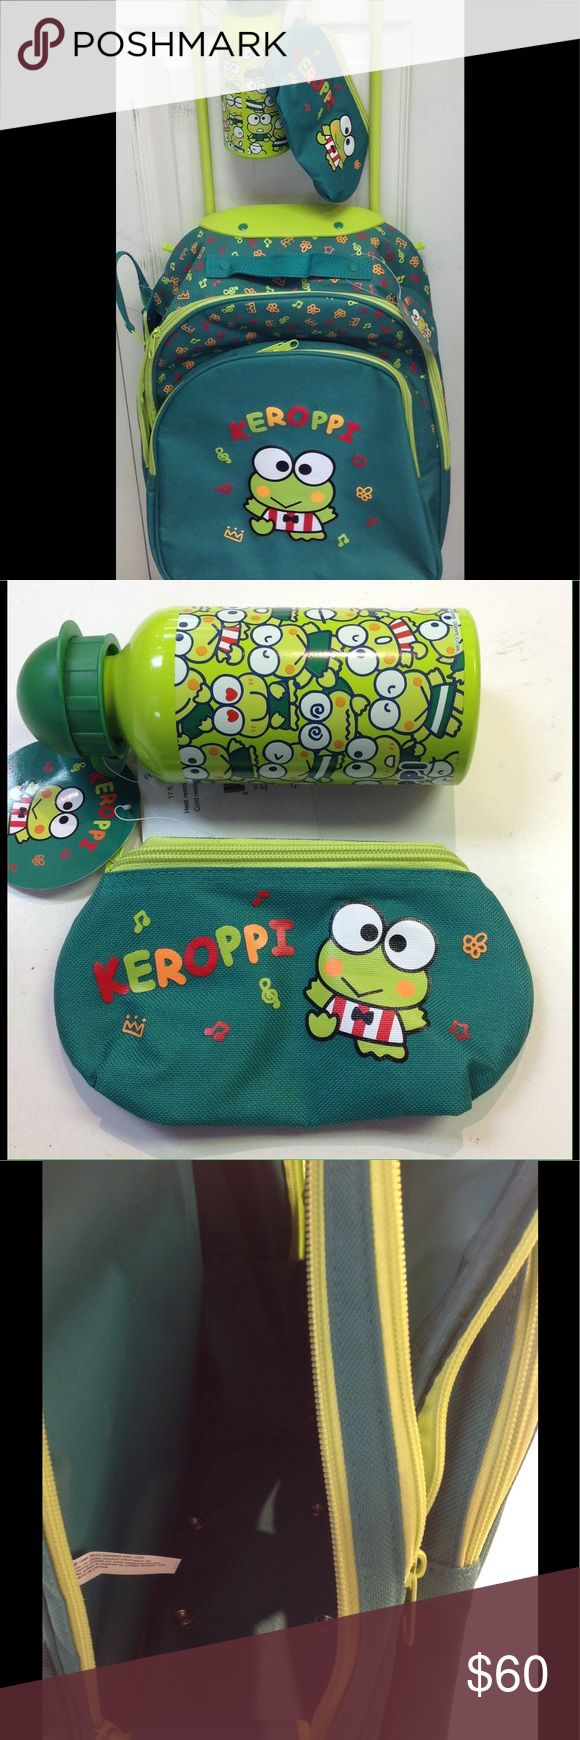 """SANRIO Keroppi Trio Great for travel or school. Rolling backpack 13""""x 17""""x5"""". Has zippered closure both on top and on side. Also a zippered closure outside pocket. Water bottle is pa free and holds 17floz. Pencilcase/holdall measures 8""""x3""""x3"""" Sanrio Bags Backpacks"""